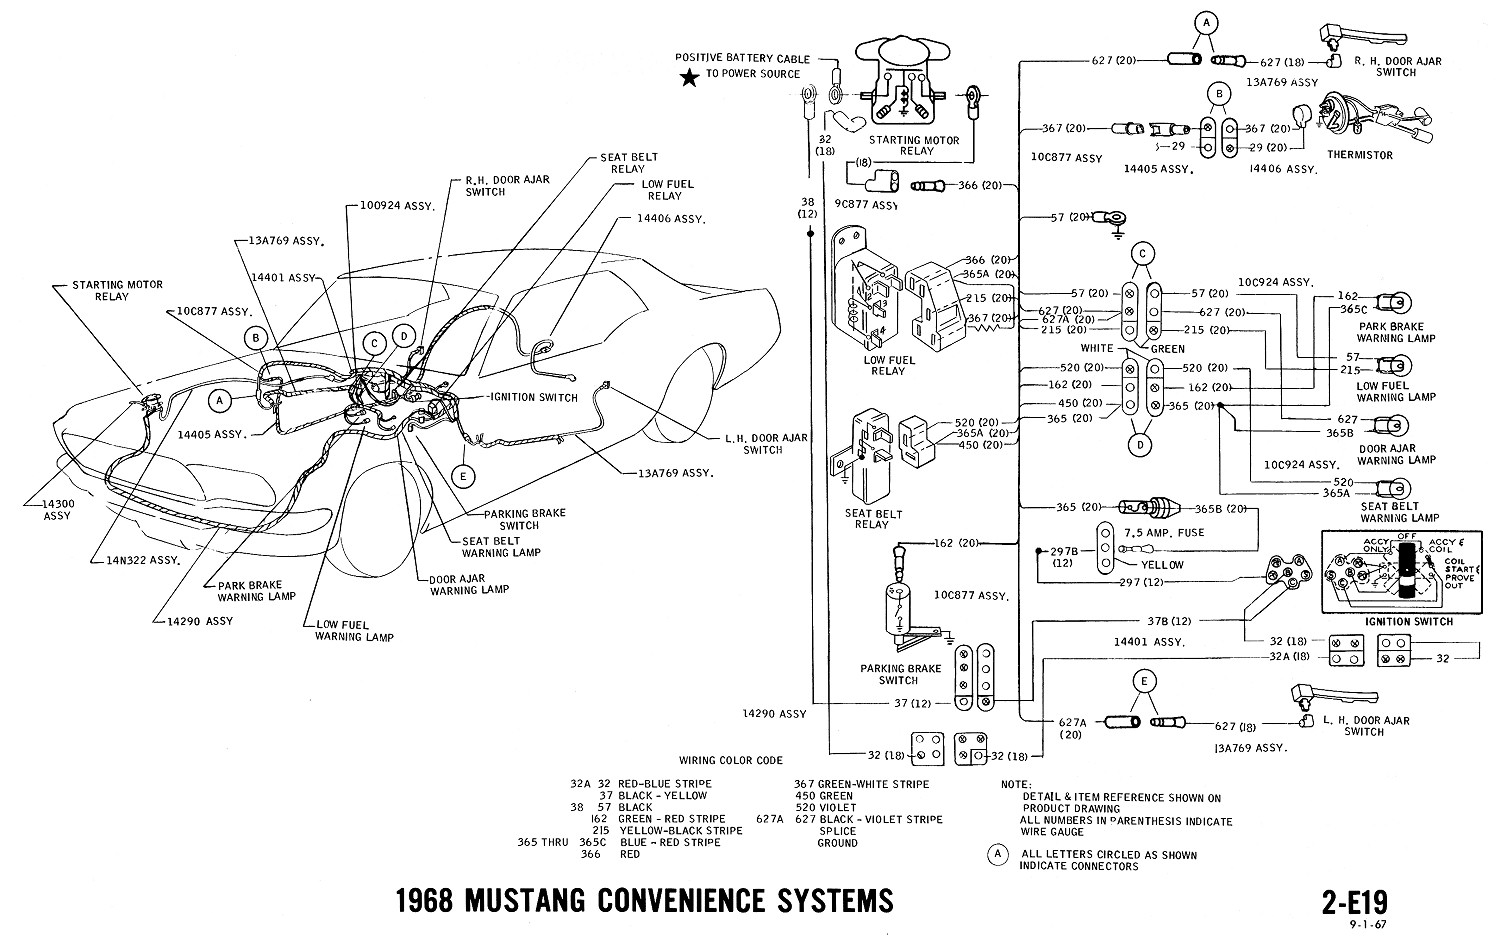 hight resolution of alternator wiring diagram 67 mustang free download image wiring 1967 mustang center console wiring diagrams free